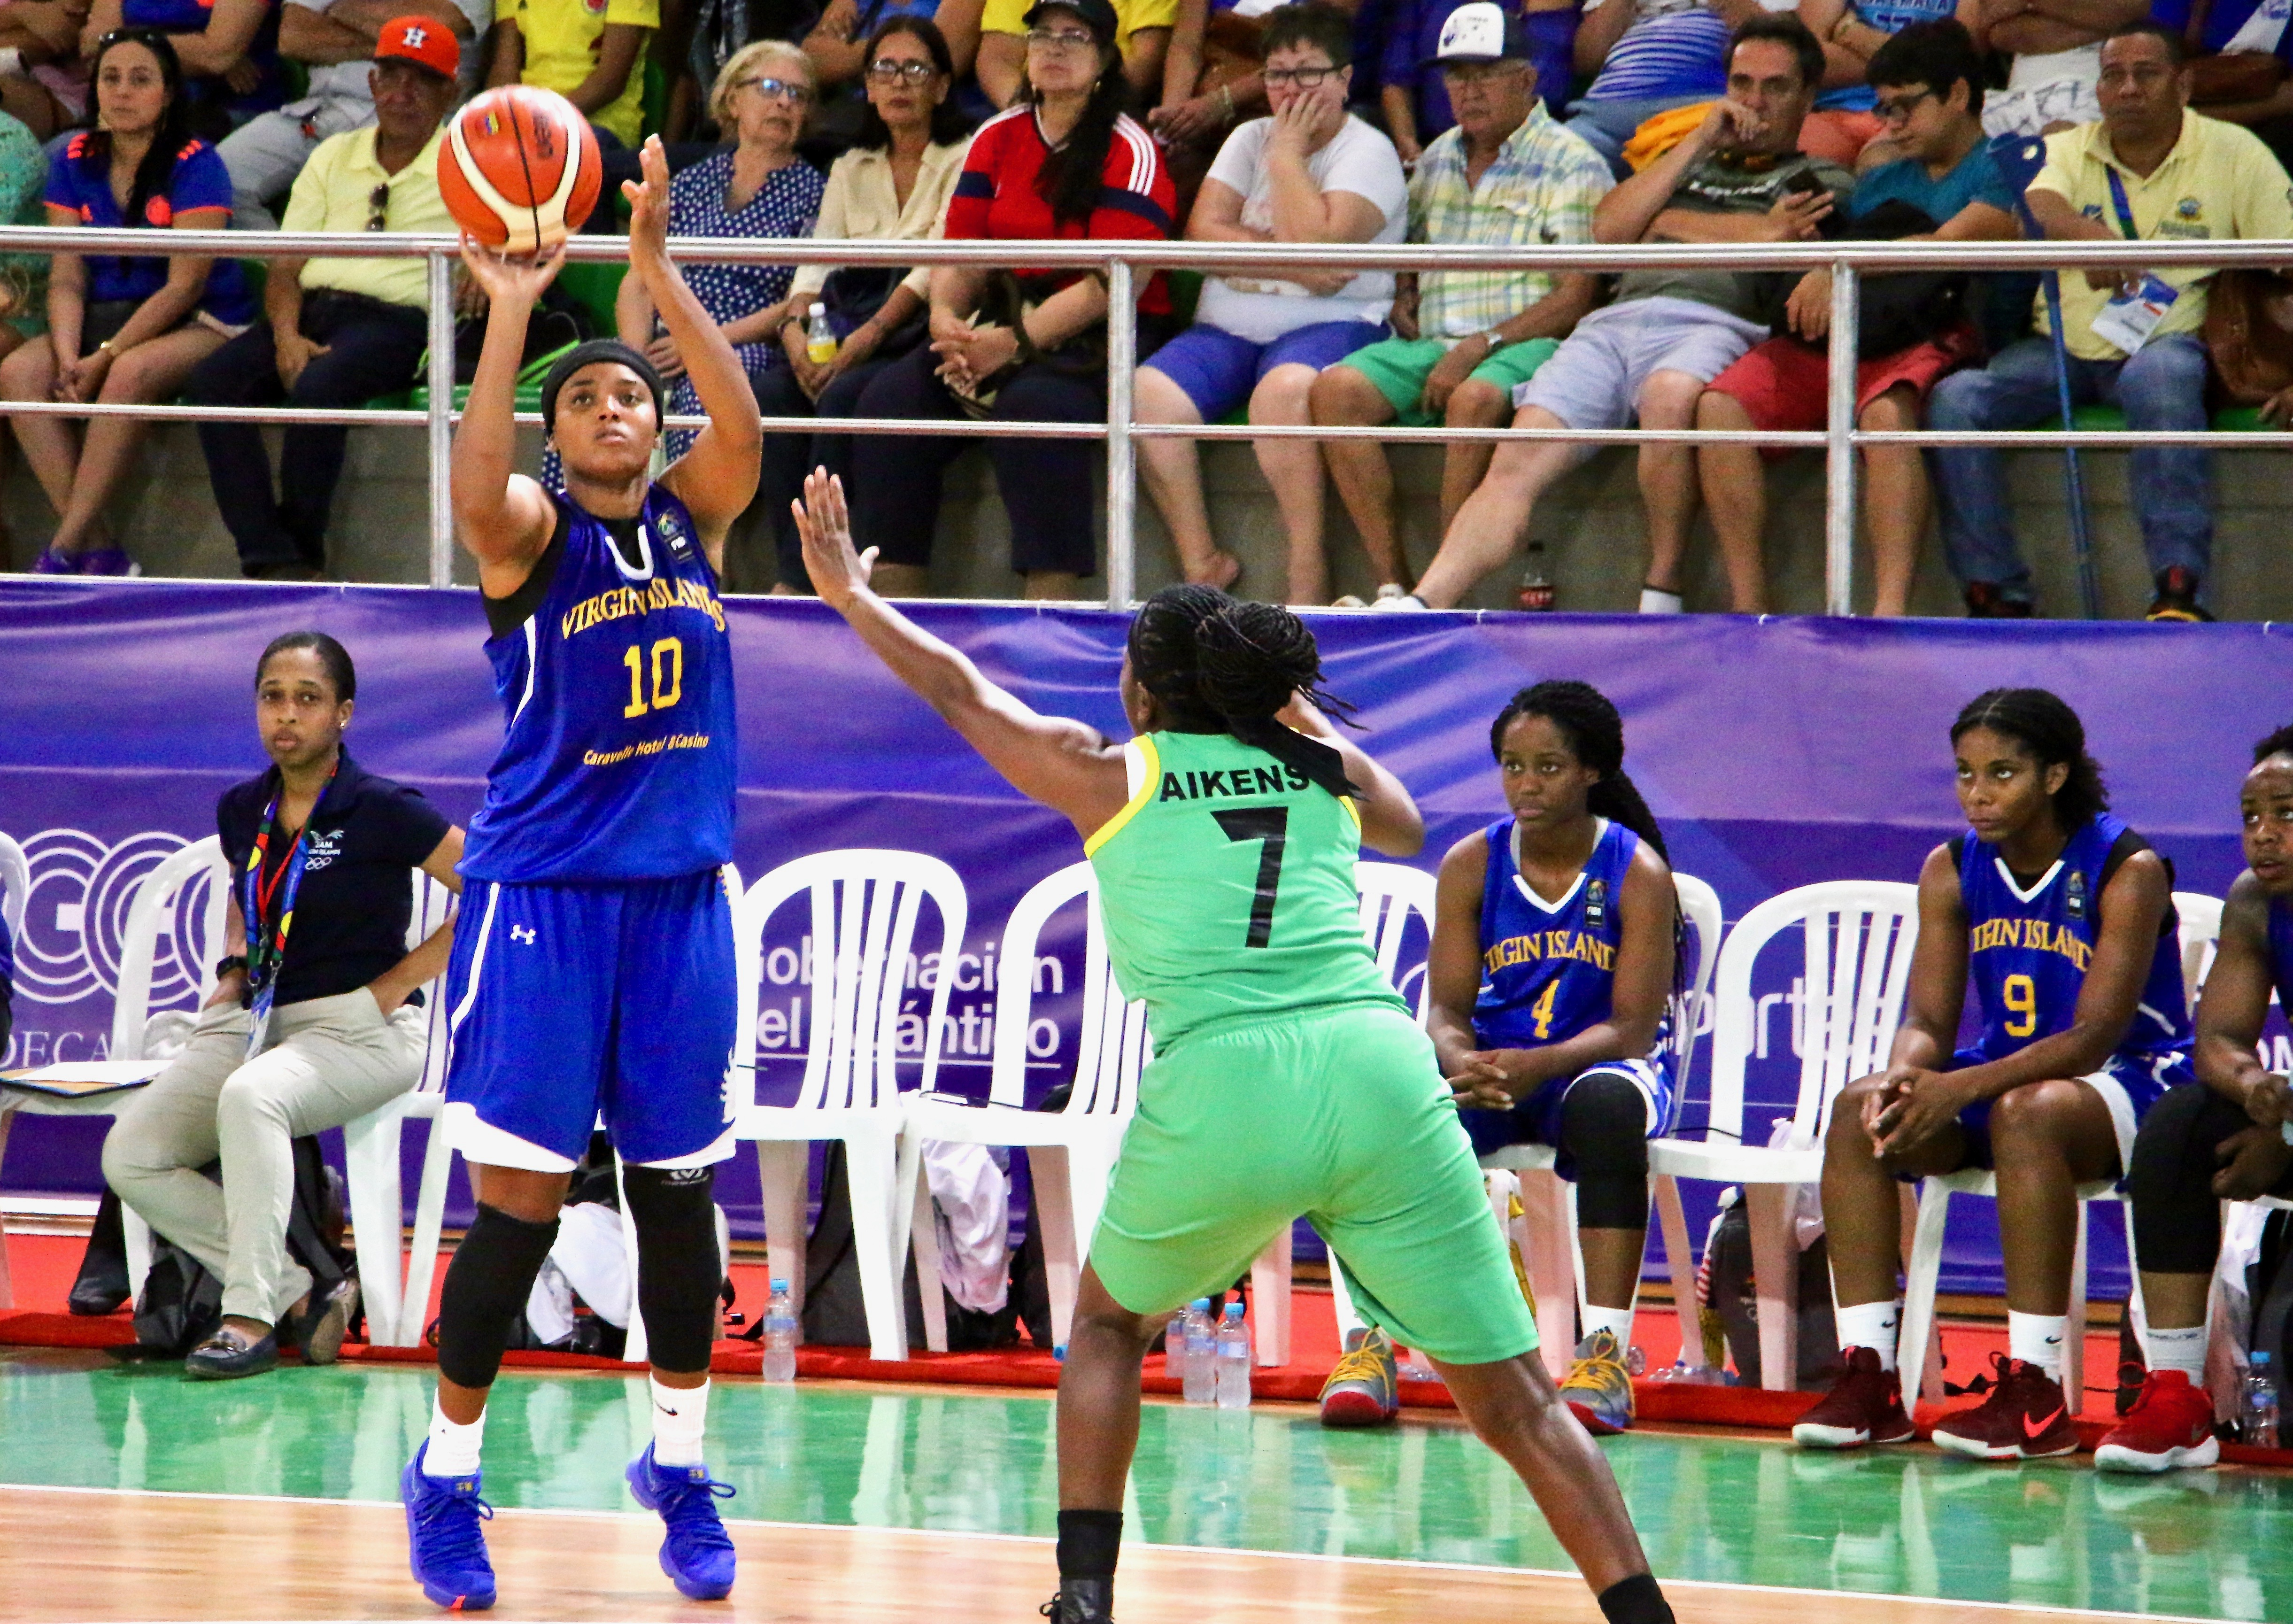 You are currently viewing Team ISV Women's Basketball Suffers Losses in Games and Players during 2018 CAC Tournament, Remain Confident Moving Forward